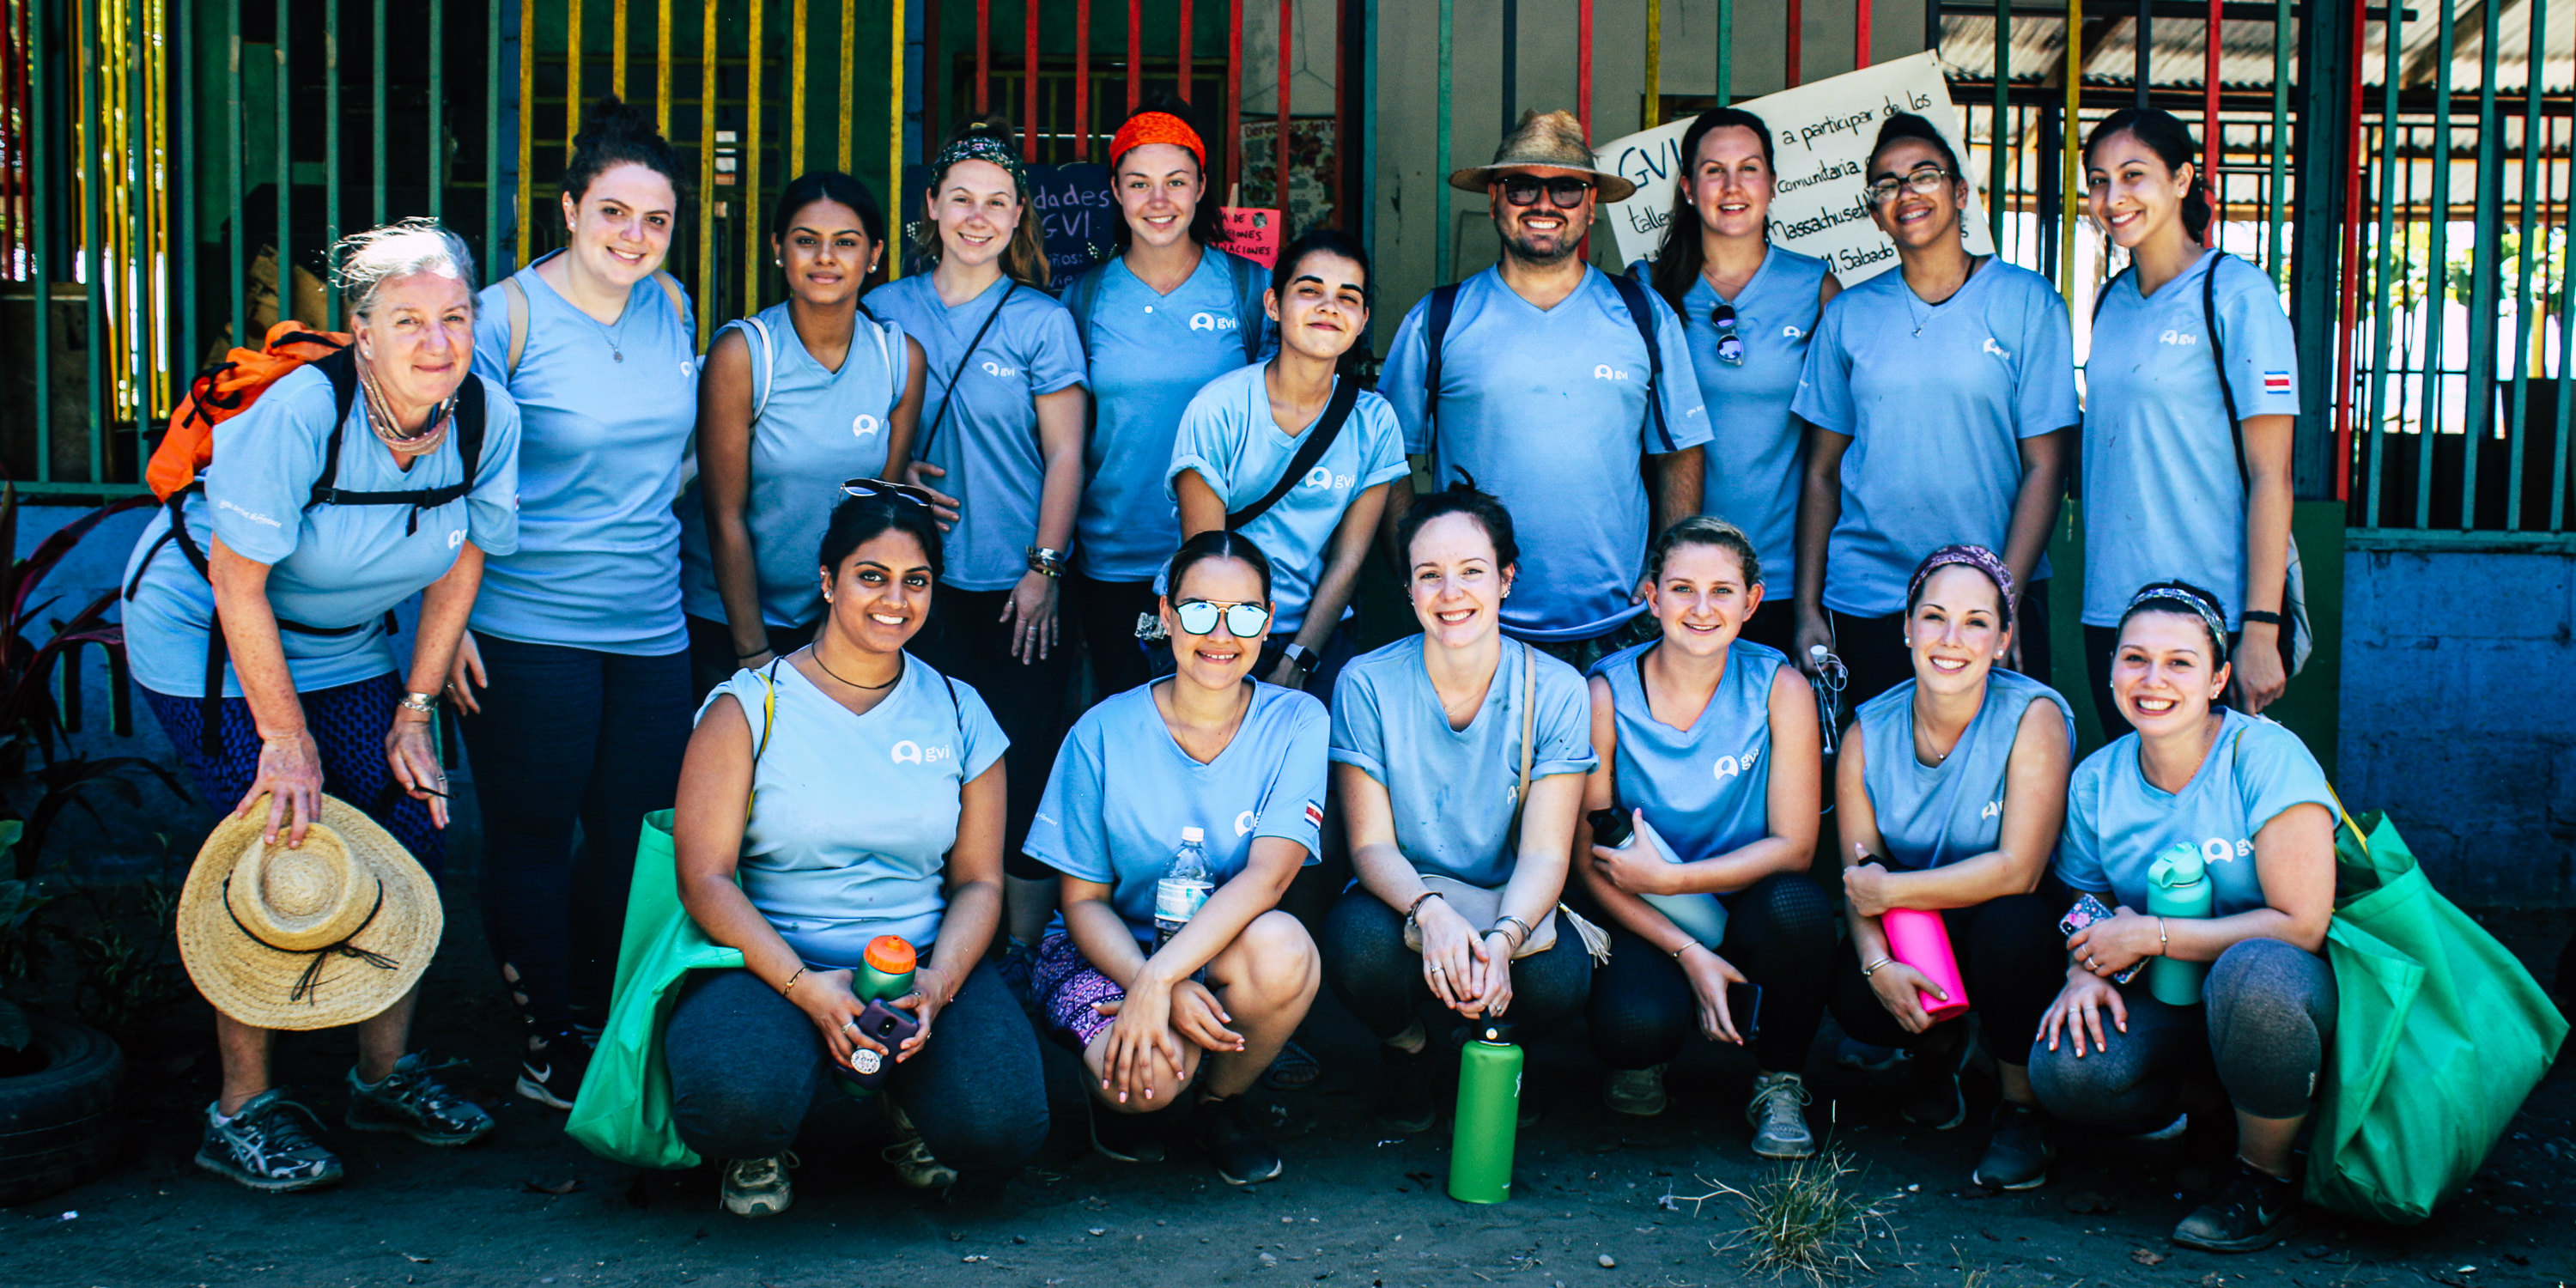 After wondering what to do in a gap year, these participants decided to learn Spanish in Costa Rica.